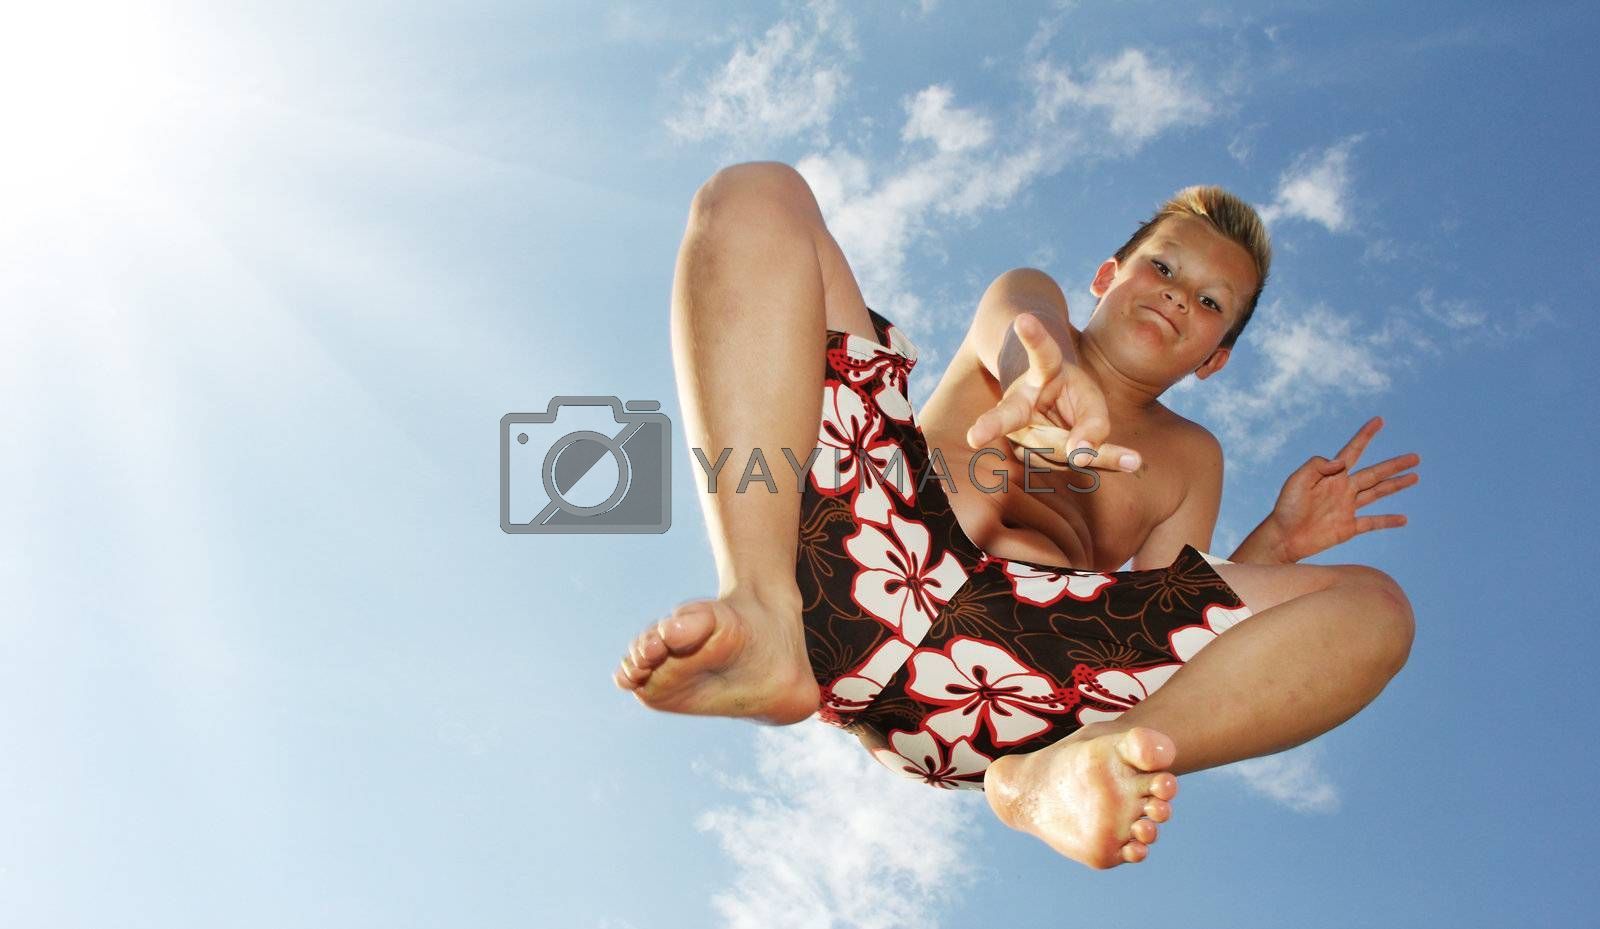 Little boy is jumping in front of the sky showing victory sign